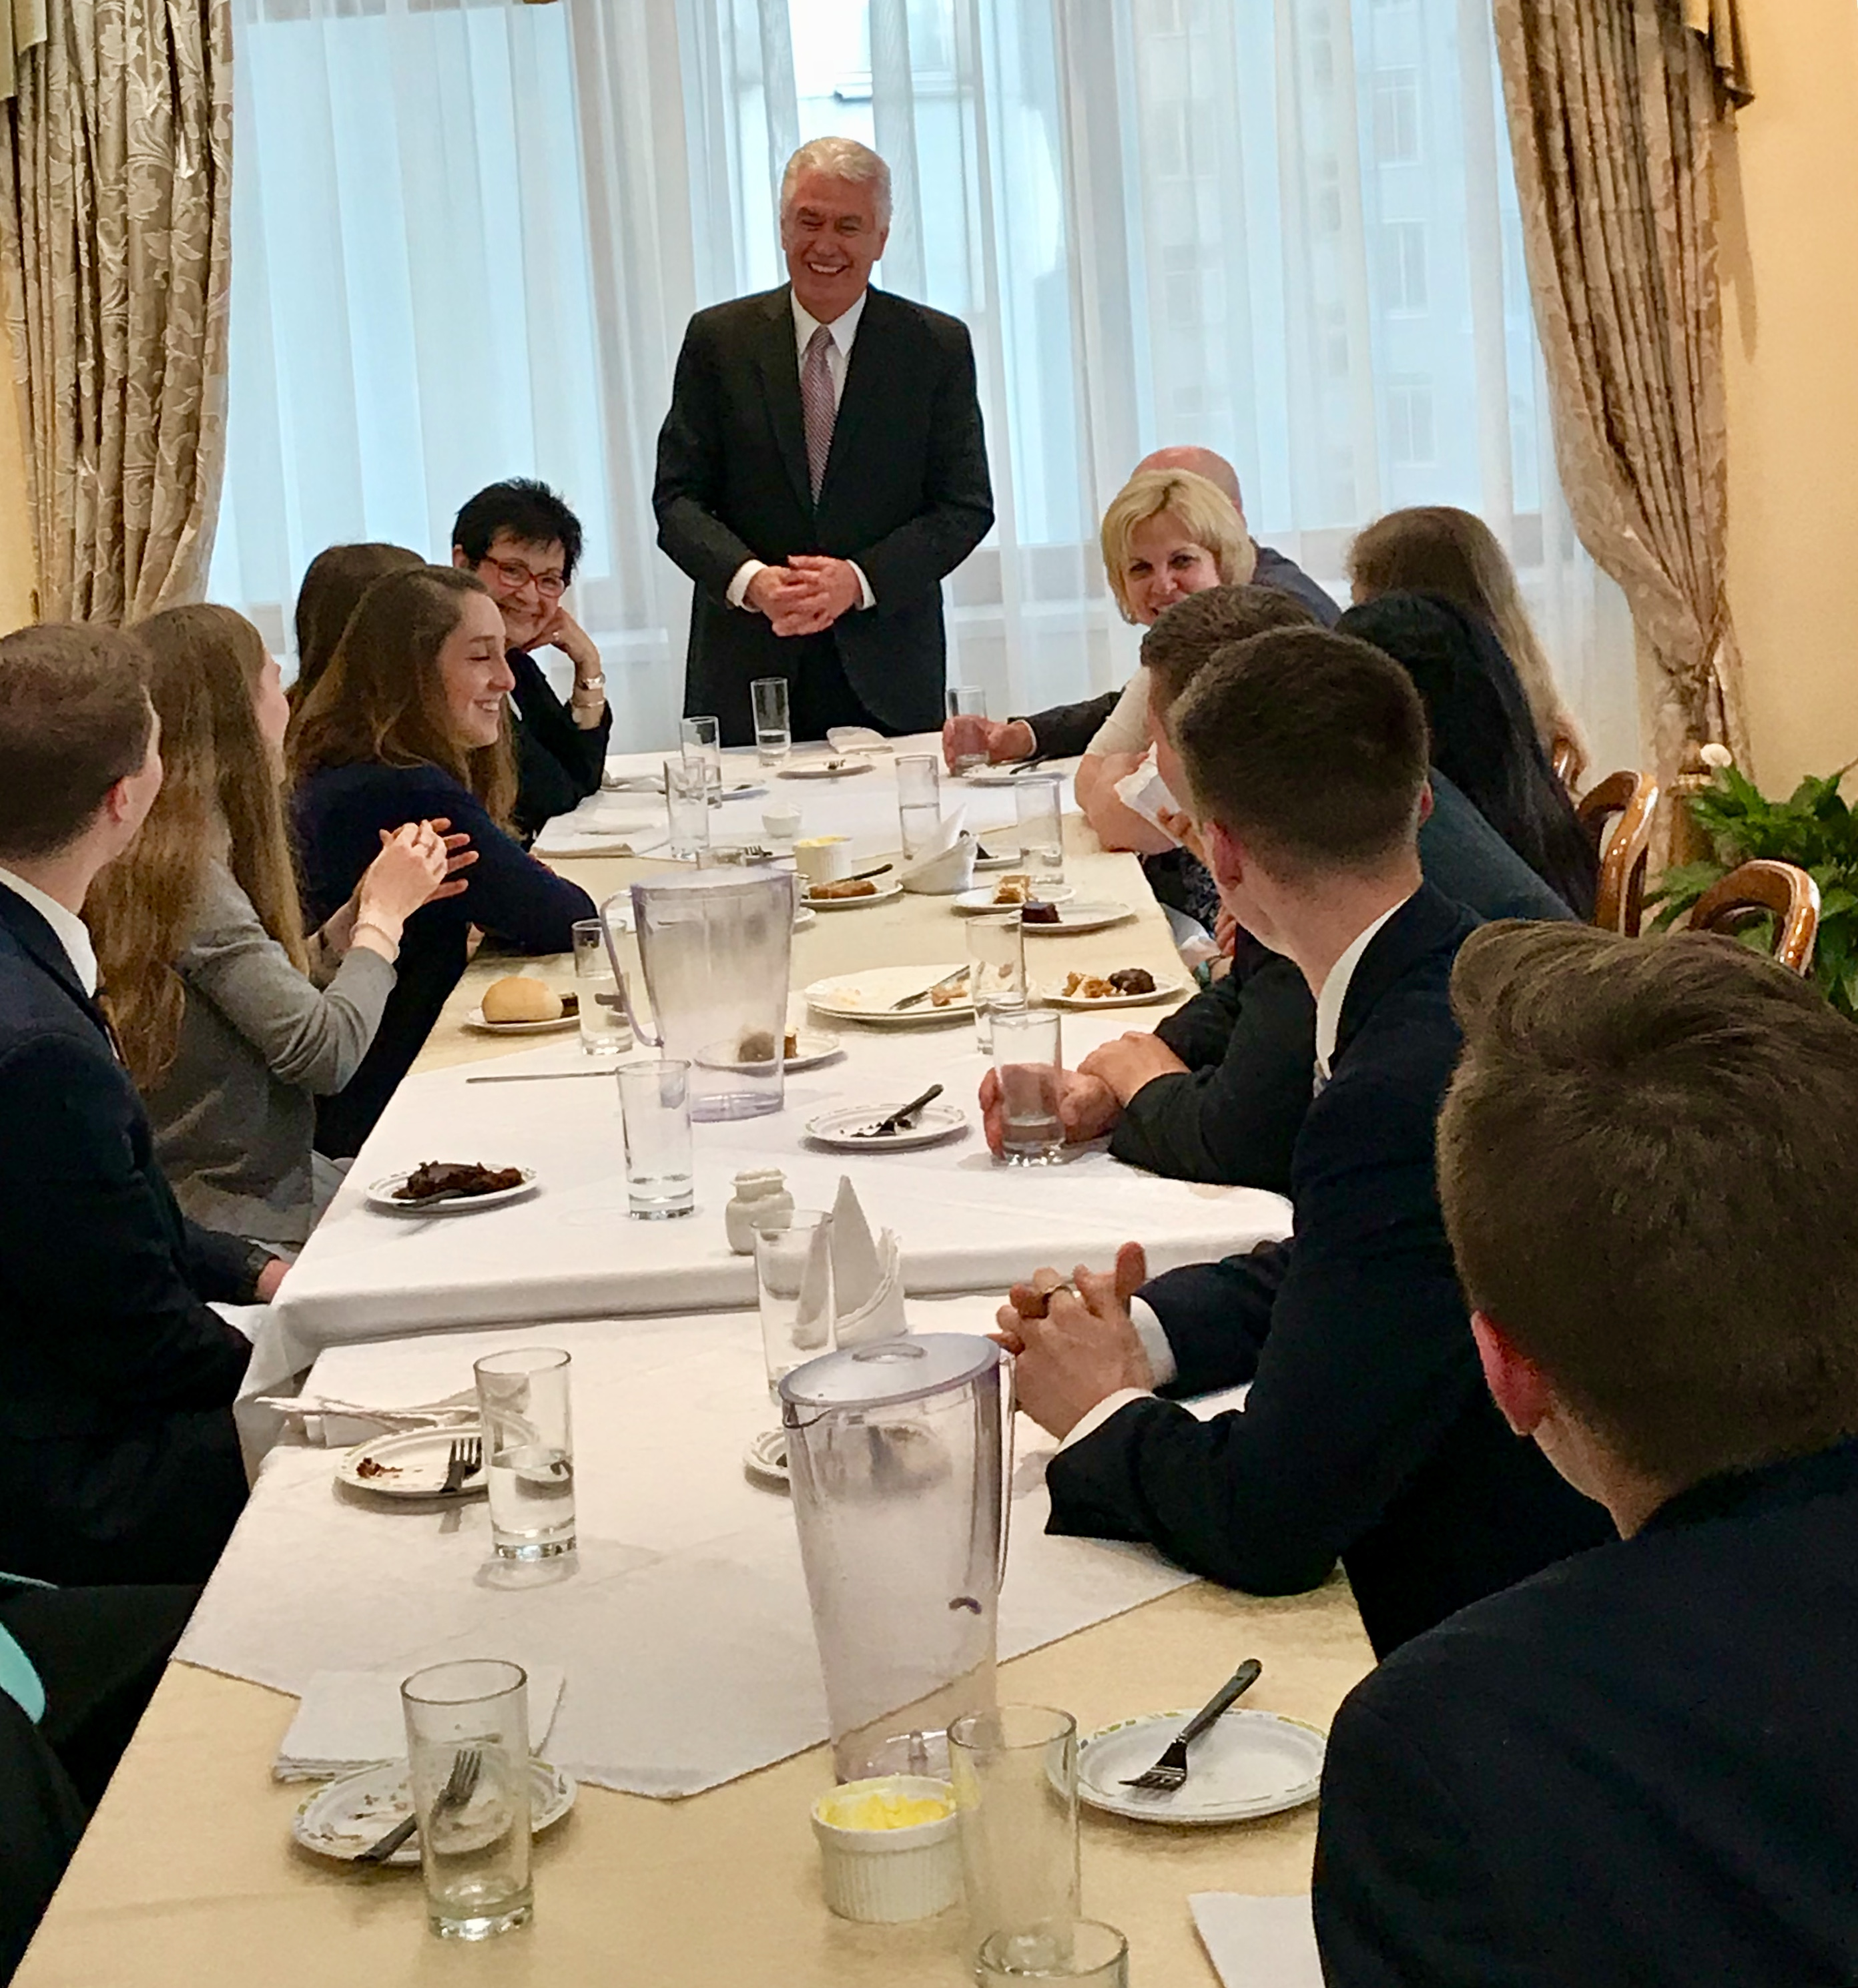 Elder Dieter F. Uchtdorf of the Quorum of the Twelve Apostles, standing at center, and Sister Harriet Uchtdorf, at his right, join a going-away dinner for 8 volunteers from the Russia St. Petersburg Mission at the mission home on April 25, 2018, prior to their departure to return home the next morning.